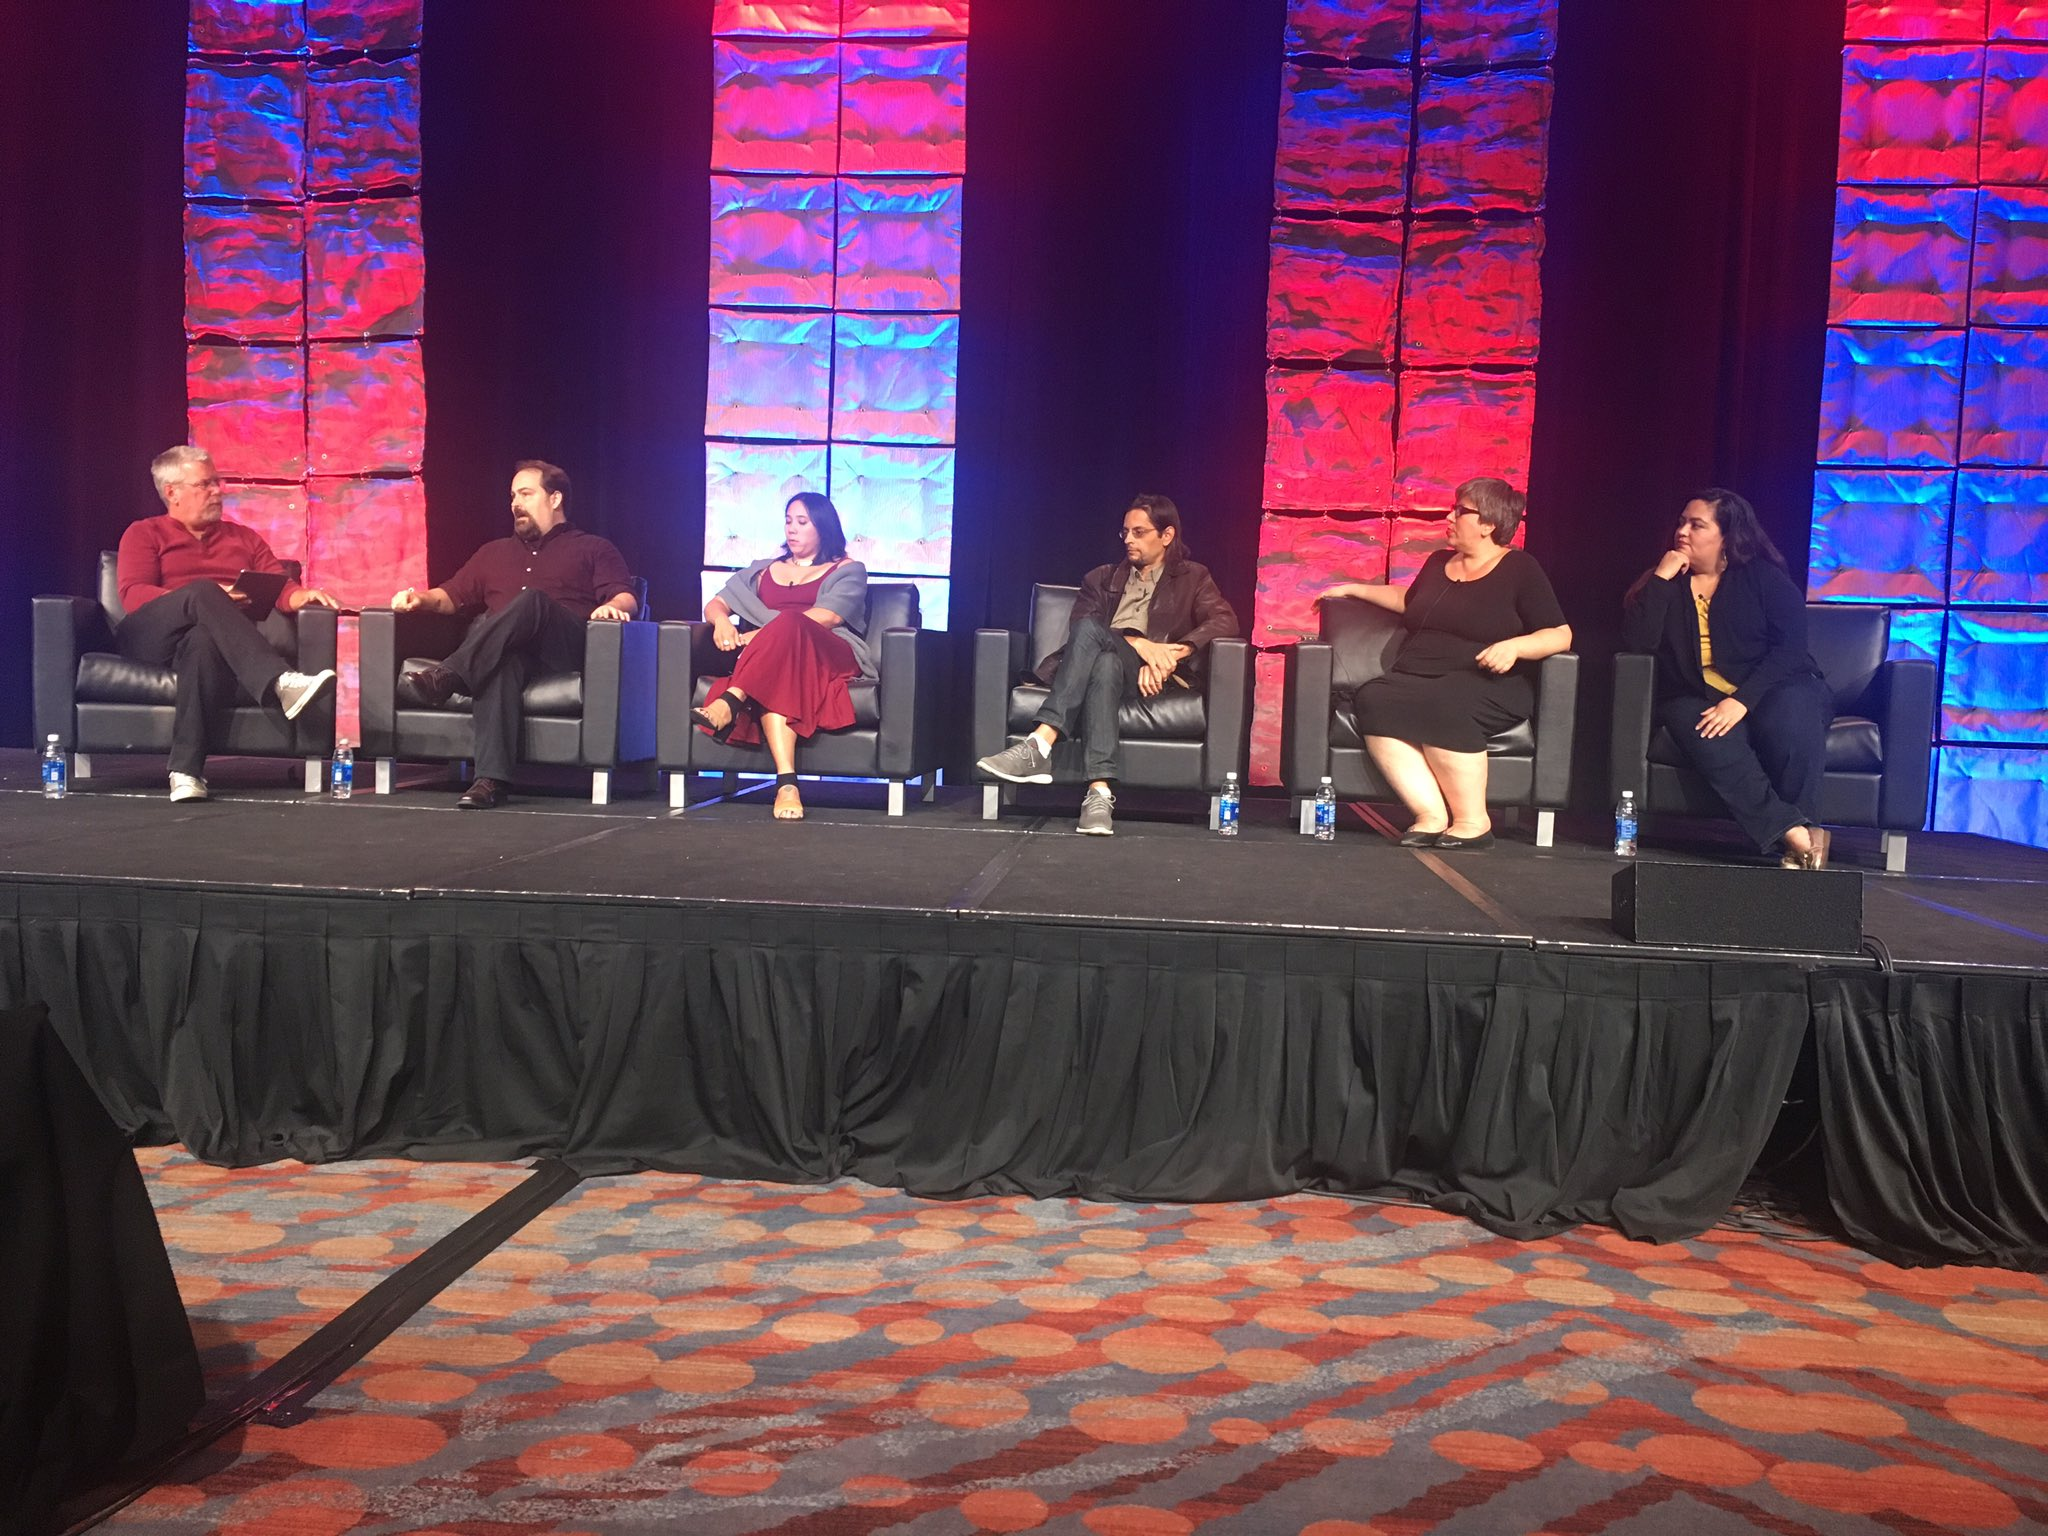 Live blog and video from the #ONA16 Keynote with @reportedly https://t.co/XSGKujzMGU #ONA16story https://t.co/489pNTIZV9